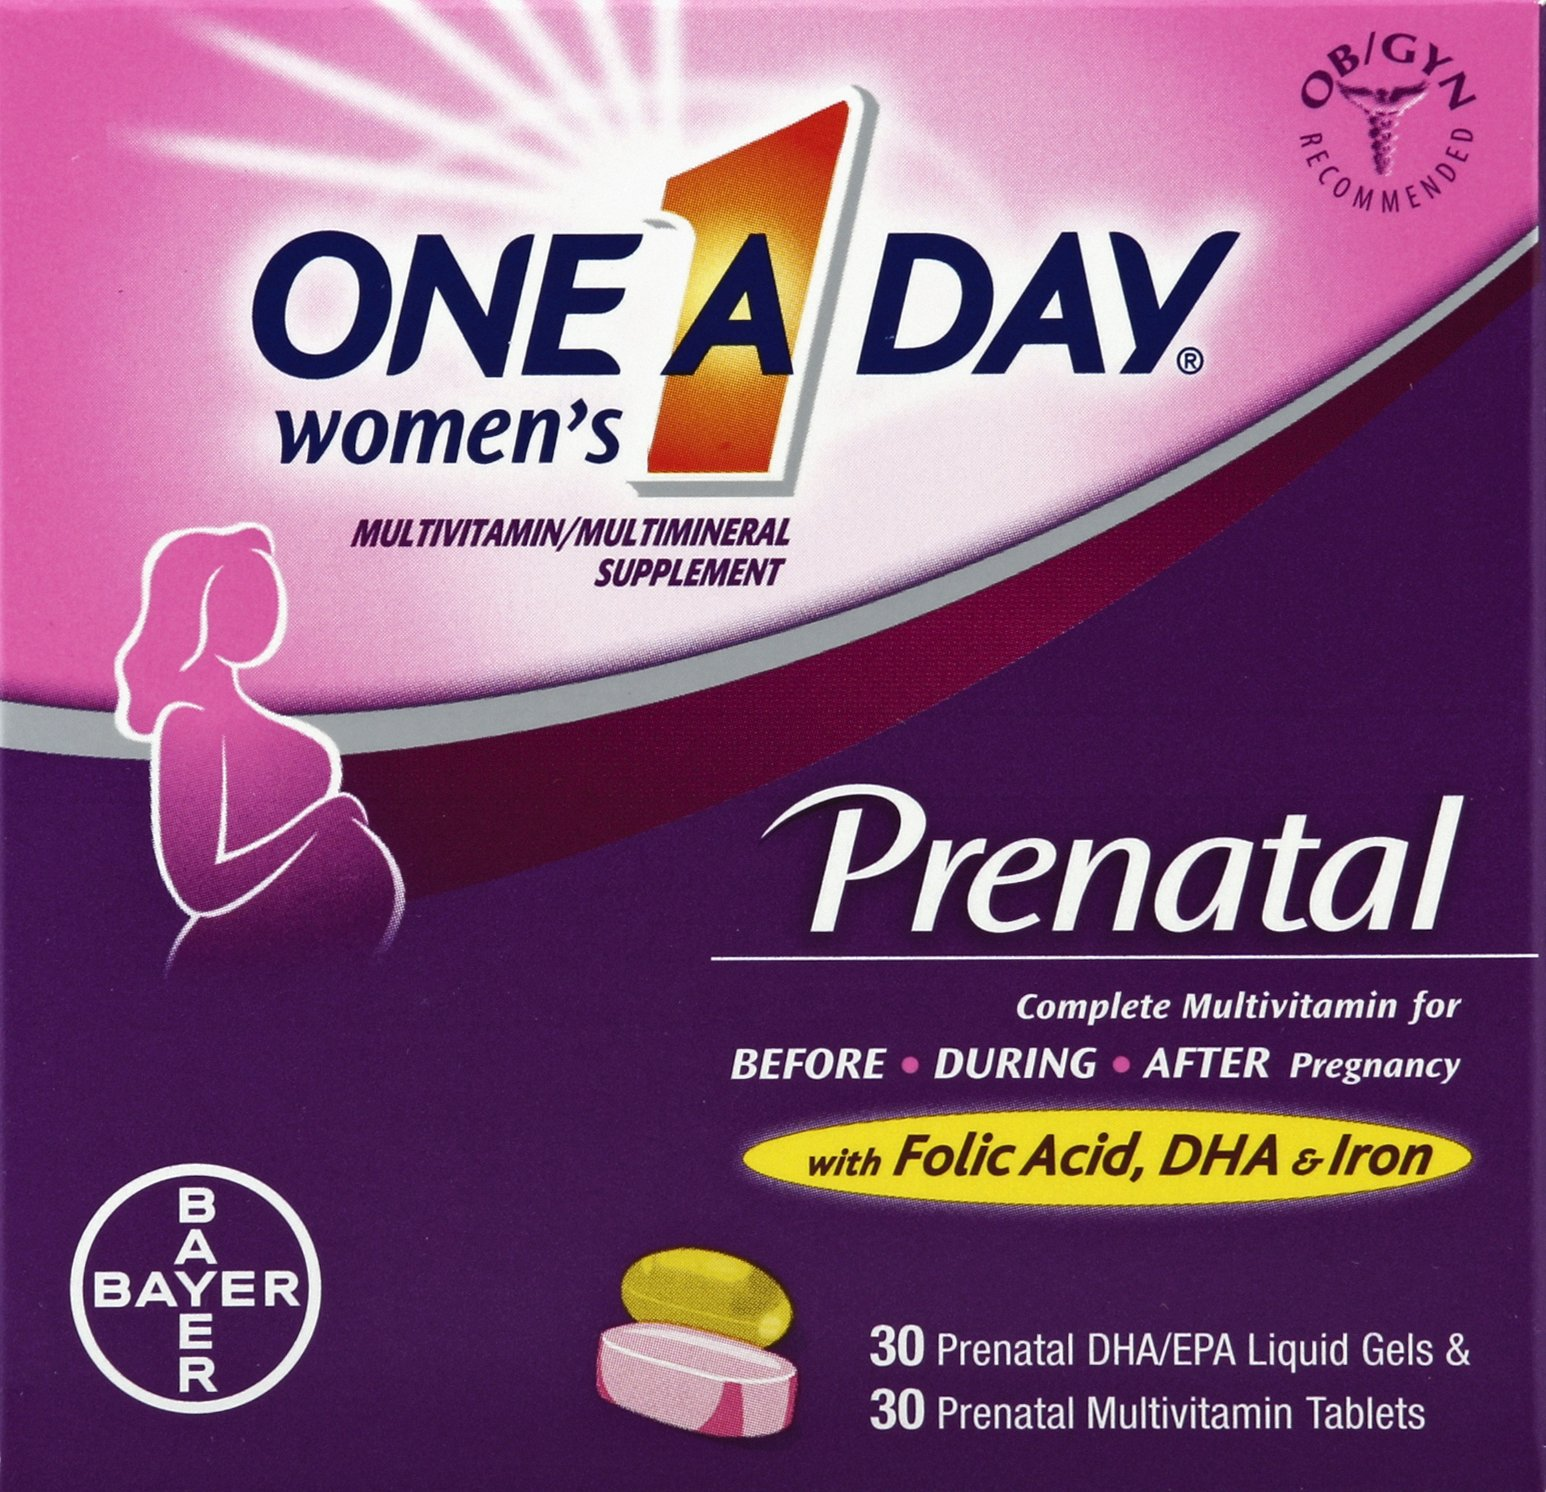 One A Day Women's Prenatal with DHA Complete Multivitamin 30 Count